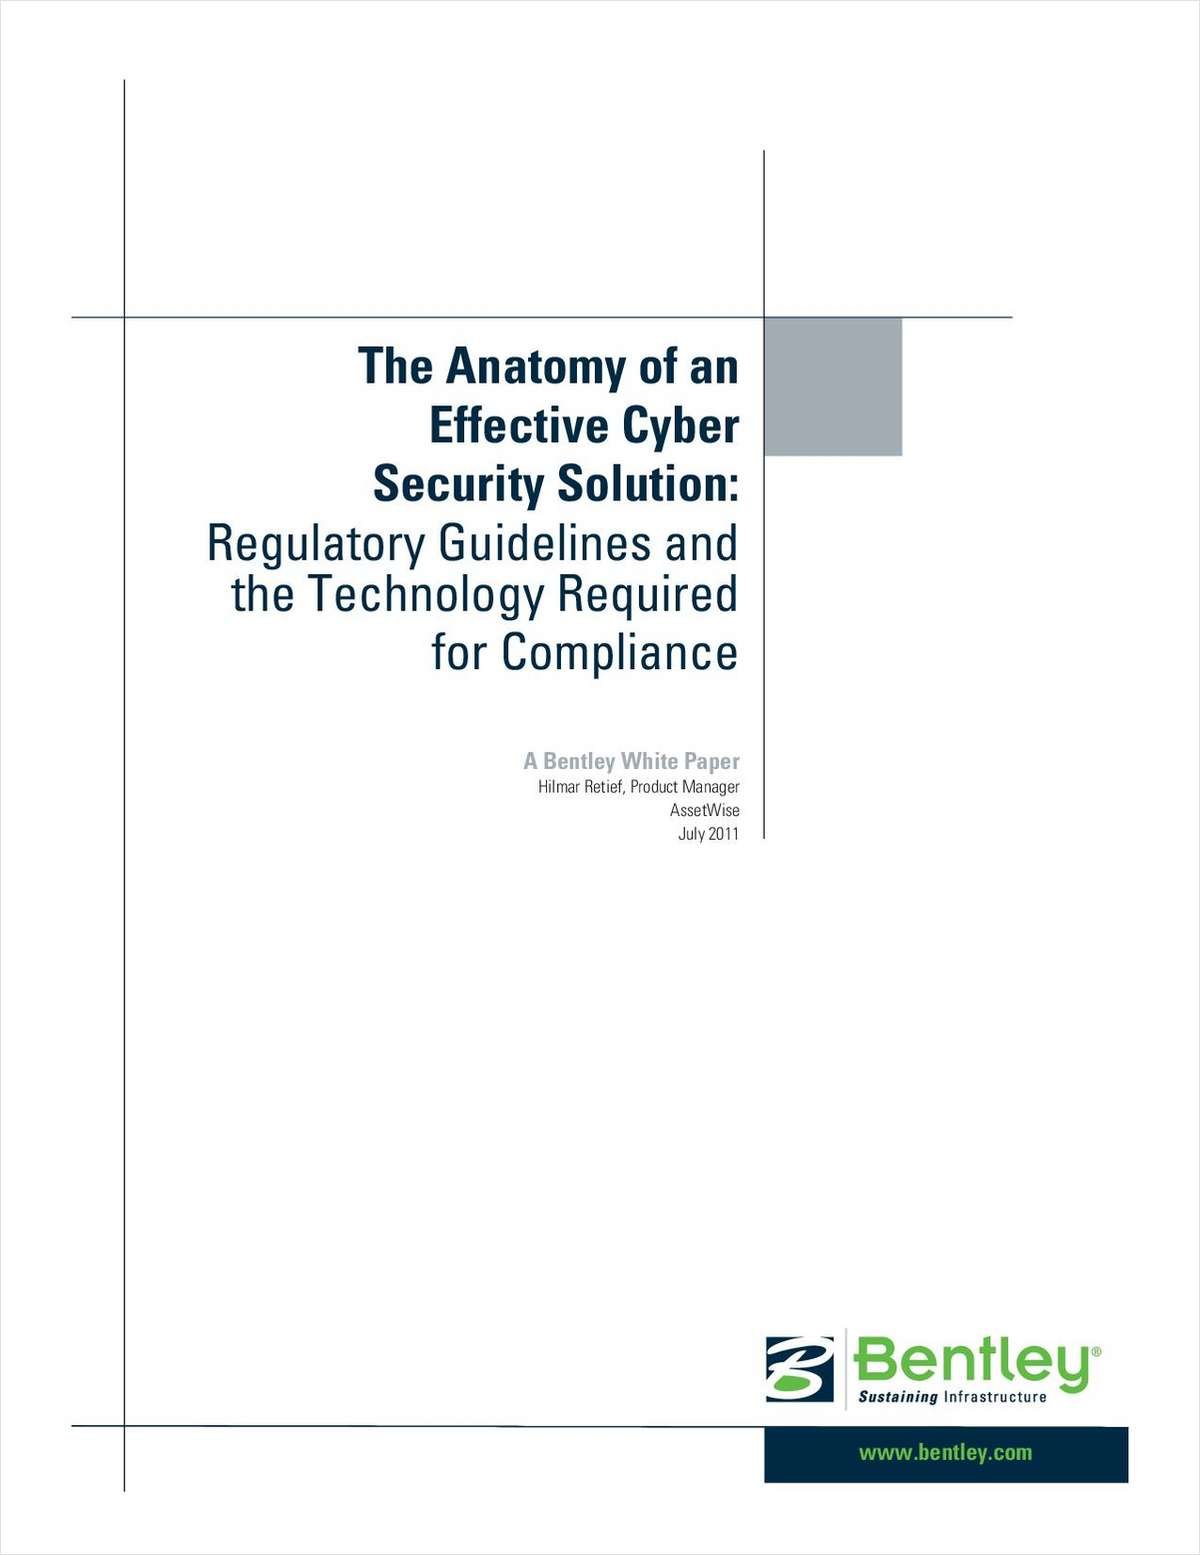 The Anatomy of an Effective Nuclear Cyber Security Solution